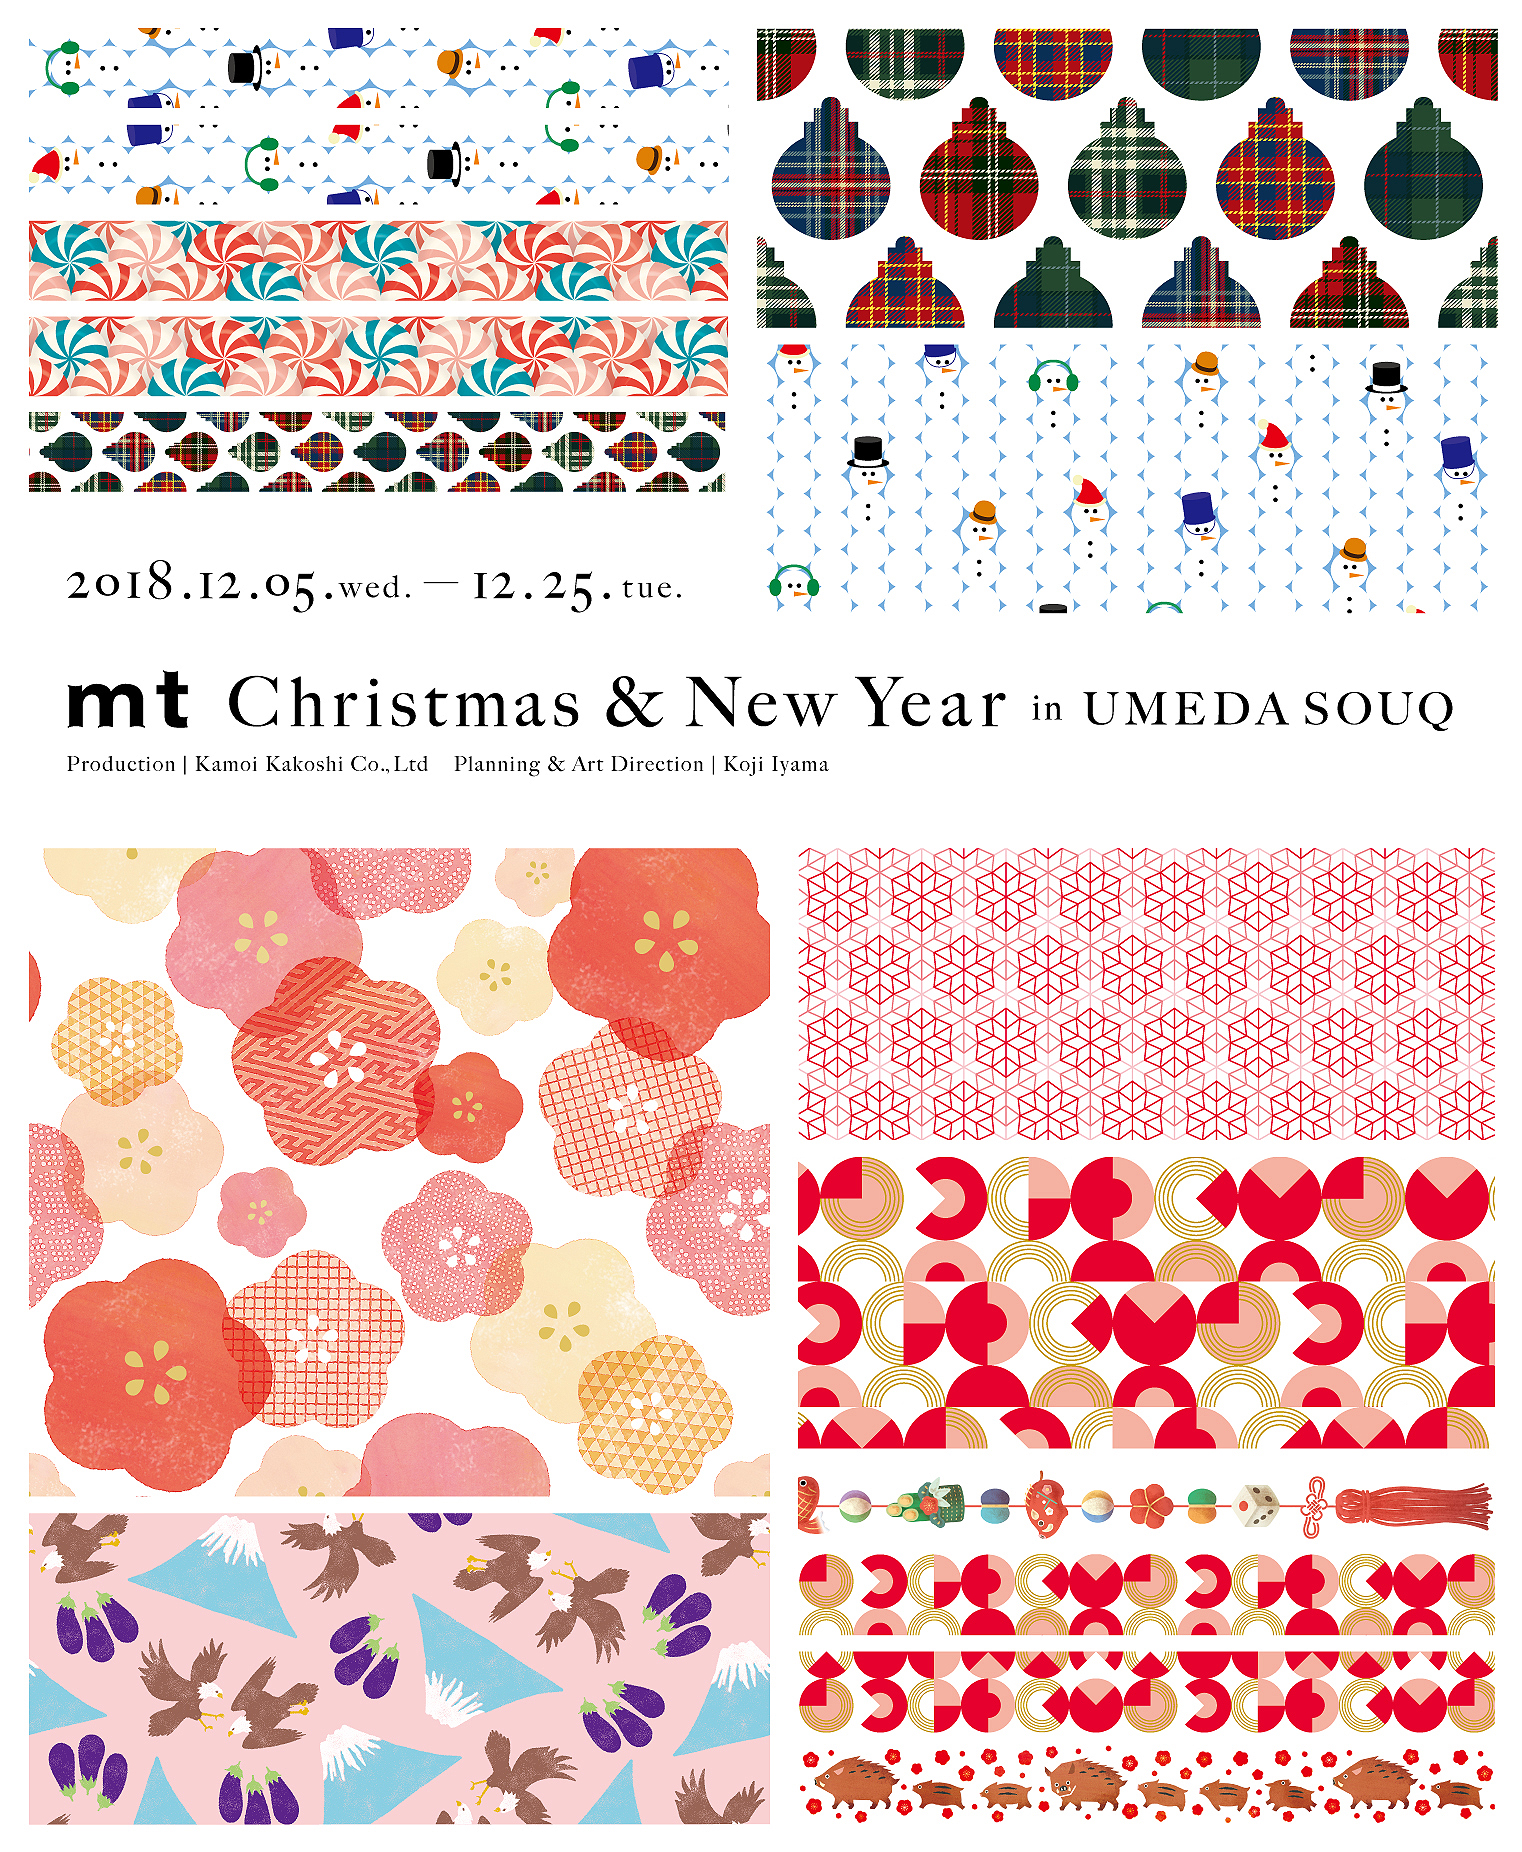 mt Chistmas & New year in UMEDA SOUQ 開催のお知らせ